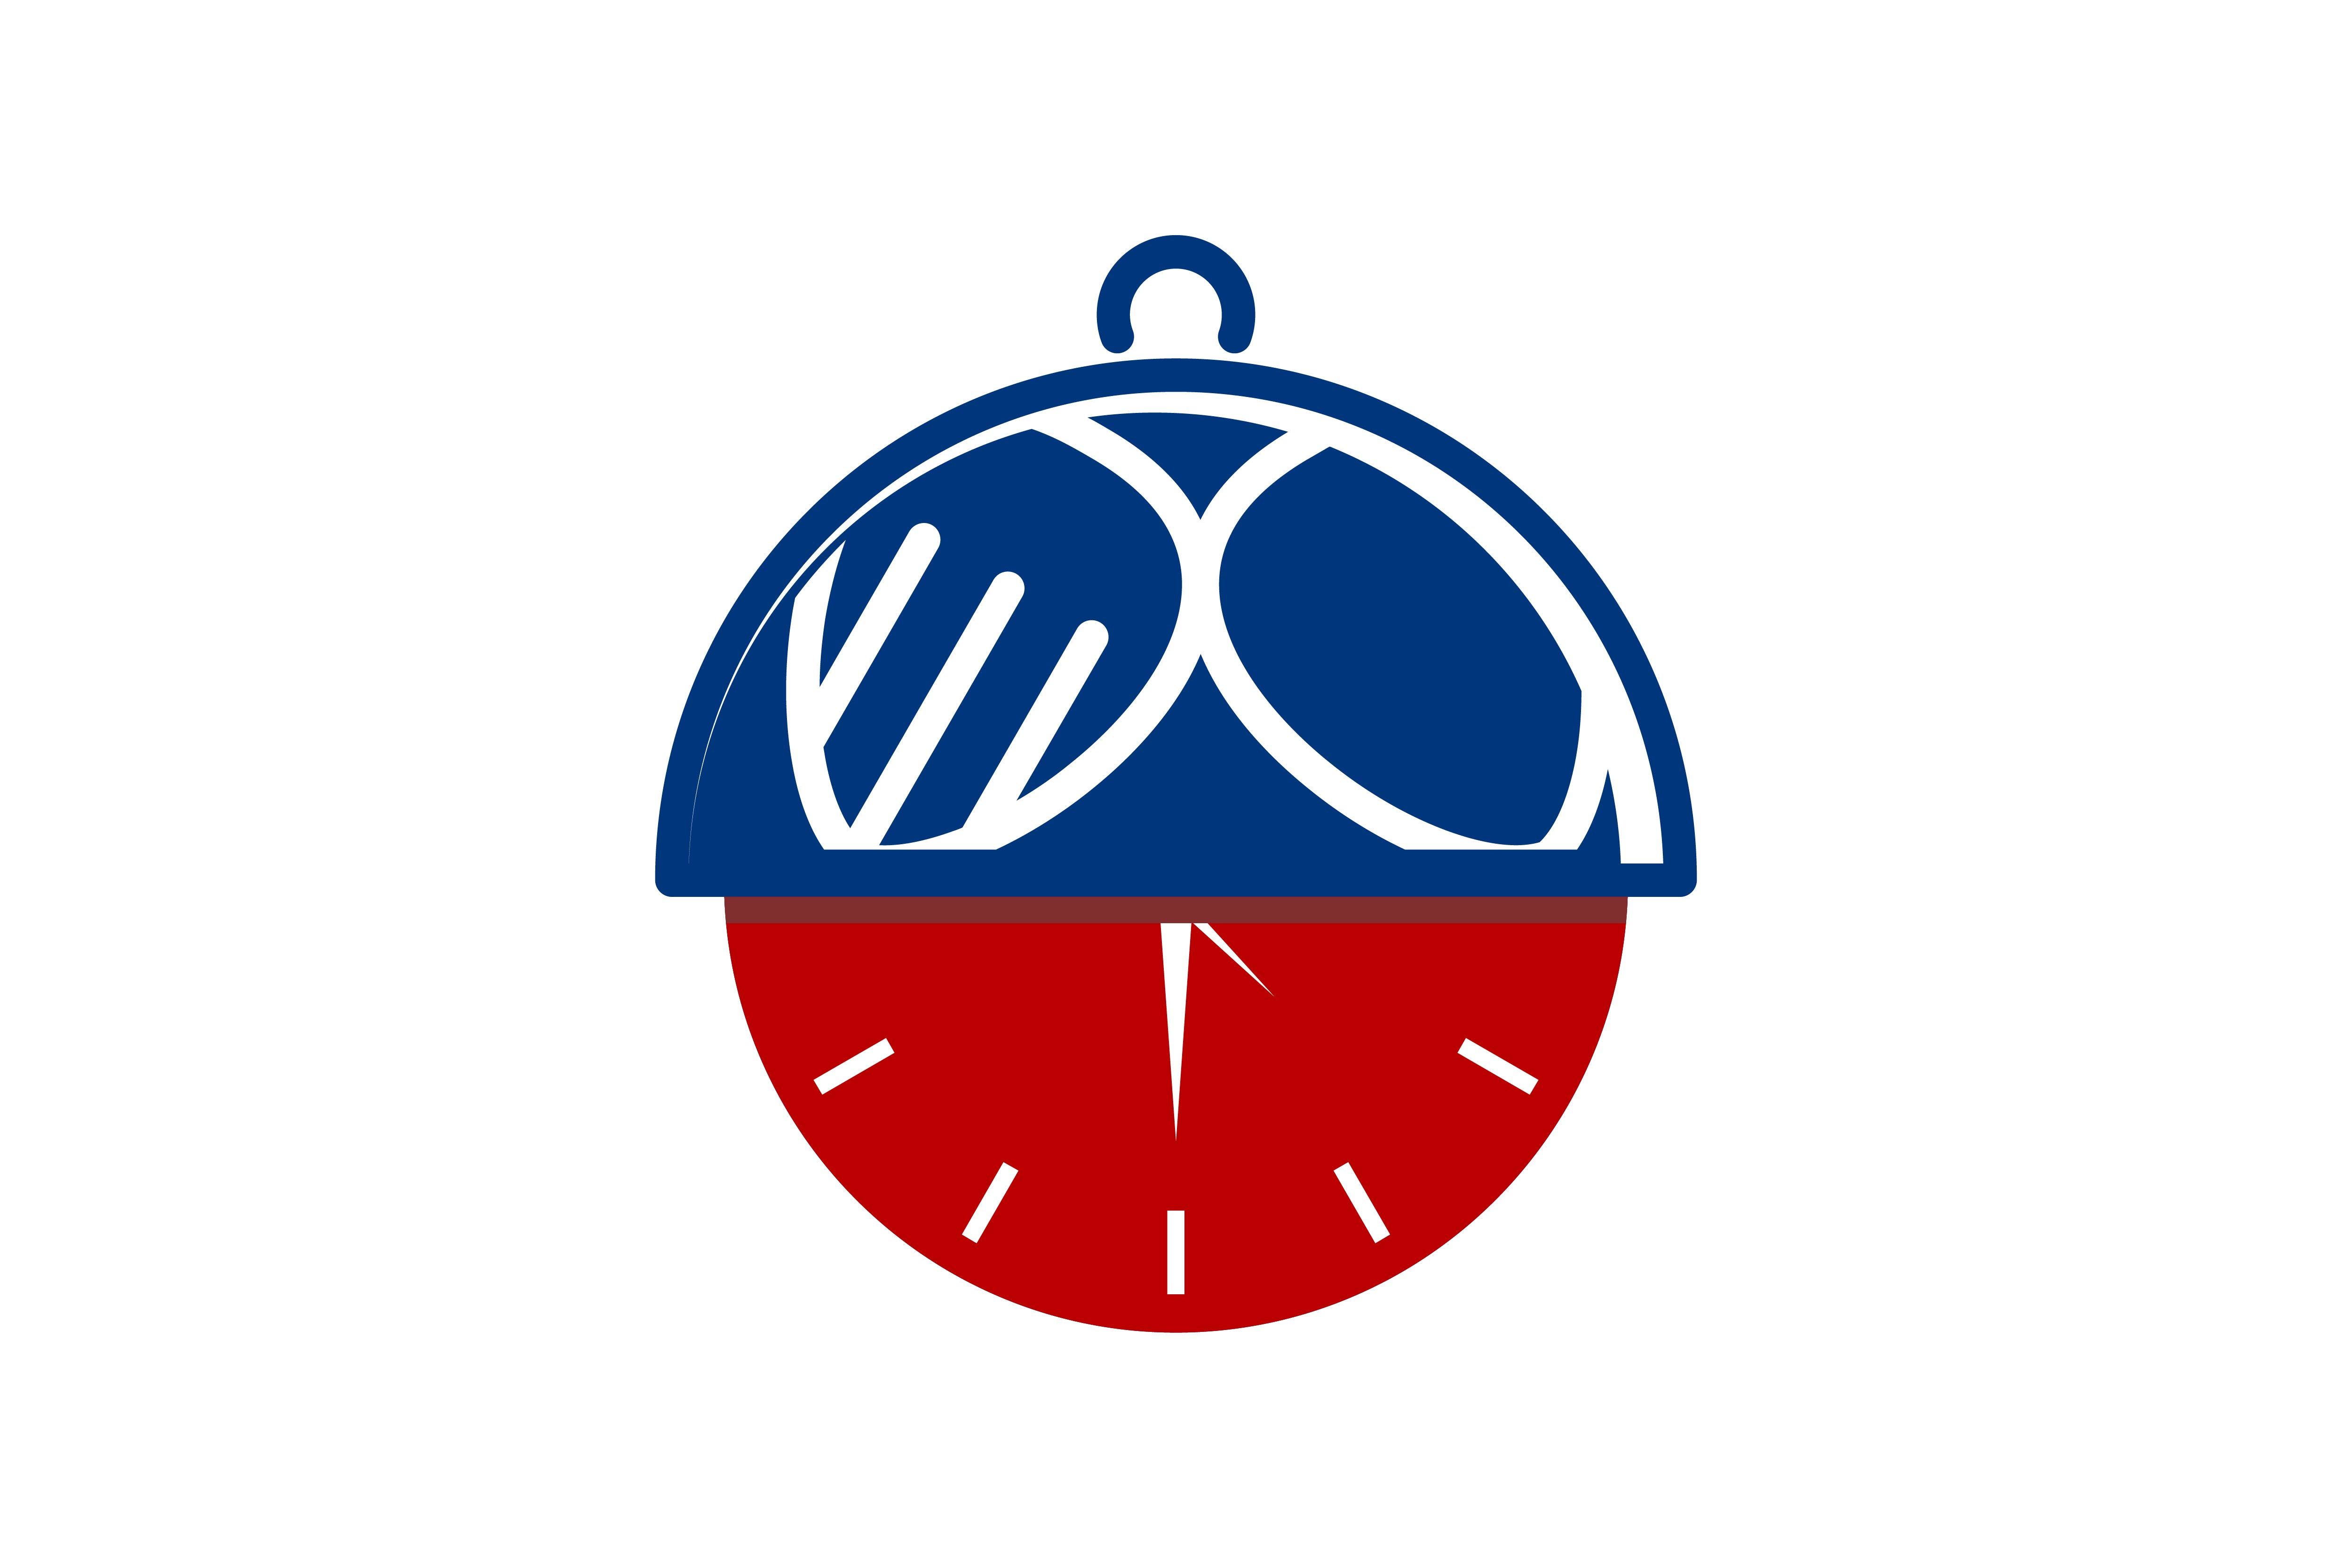 Download Free Clock And Cover Plate Logo Graphic By Yahyaanasatokillah for Cricut Explore, Silhouette and other cutting machines.